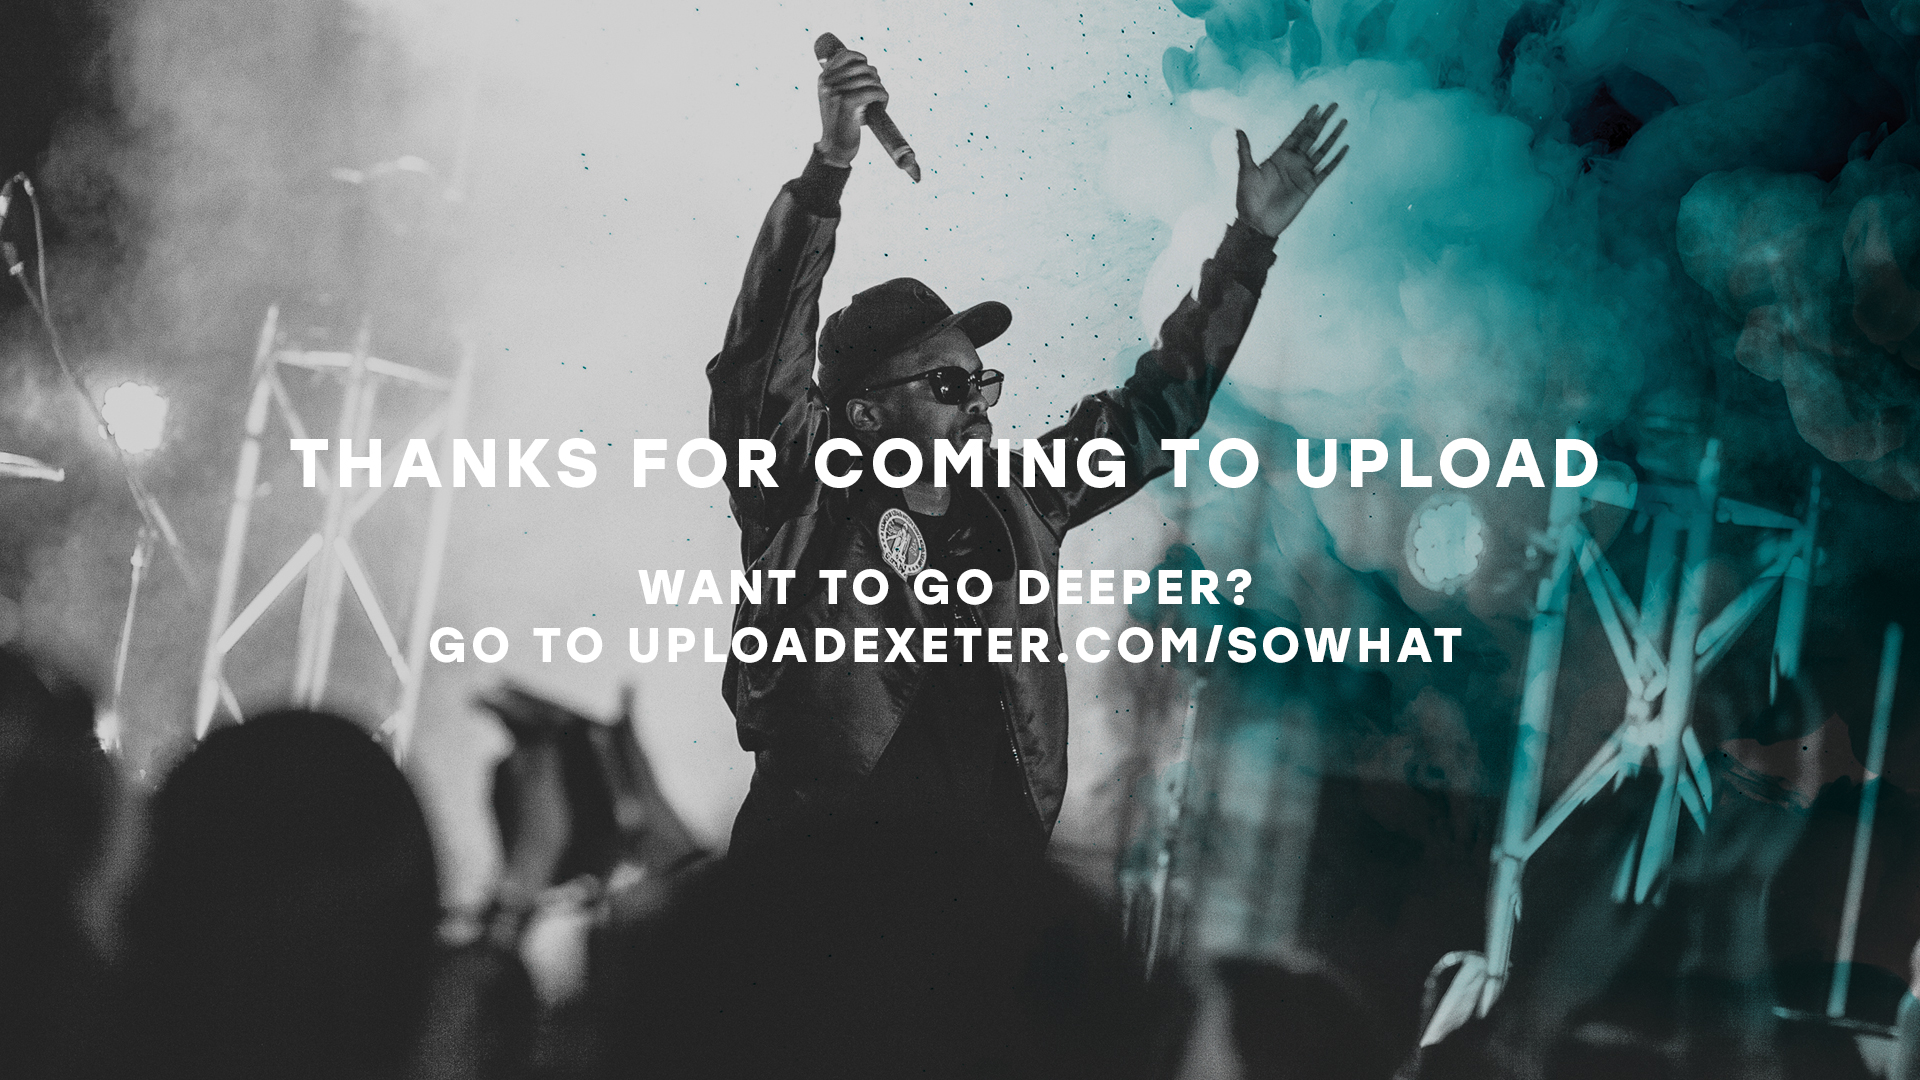 Upload Exeter